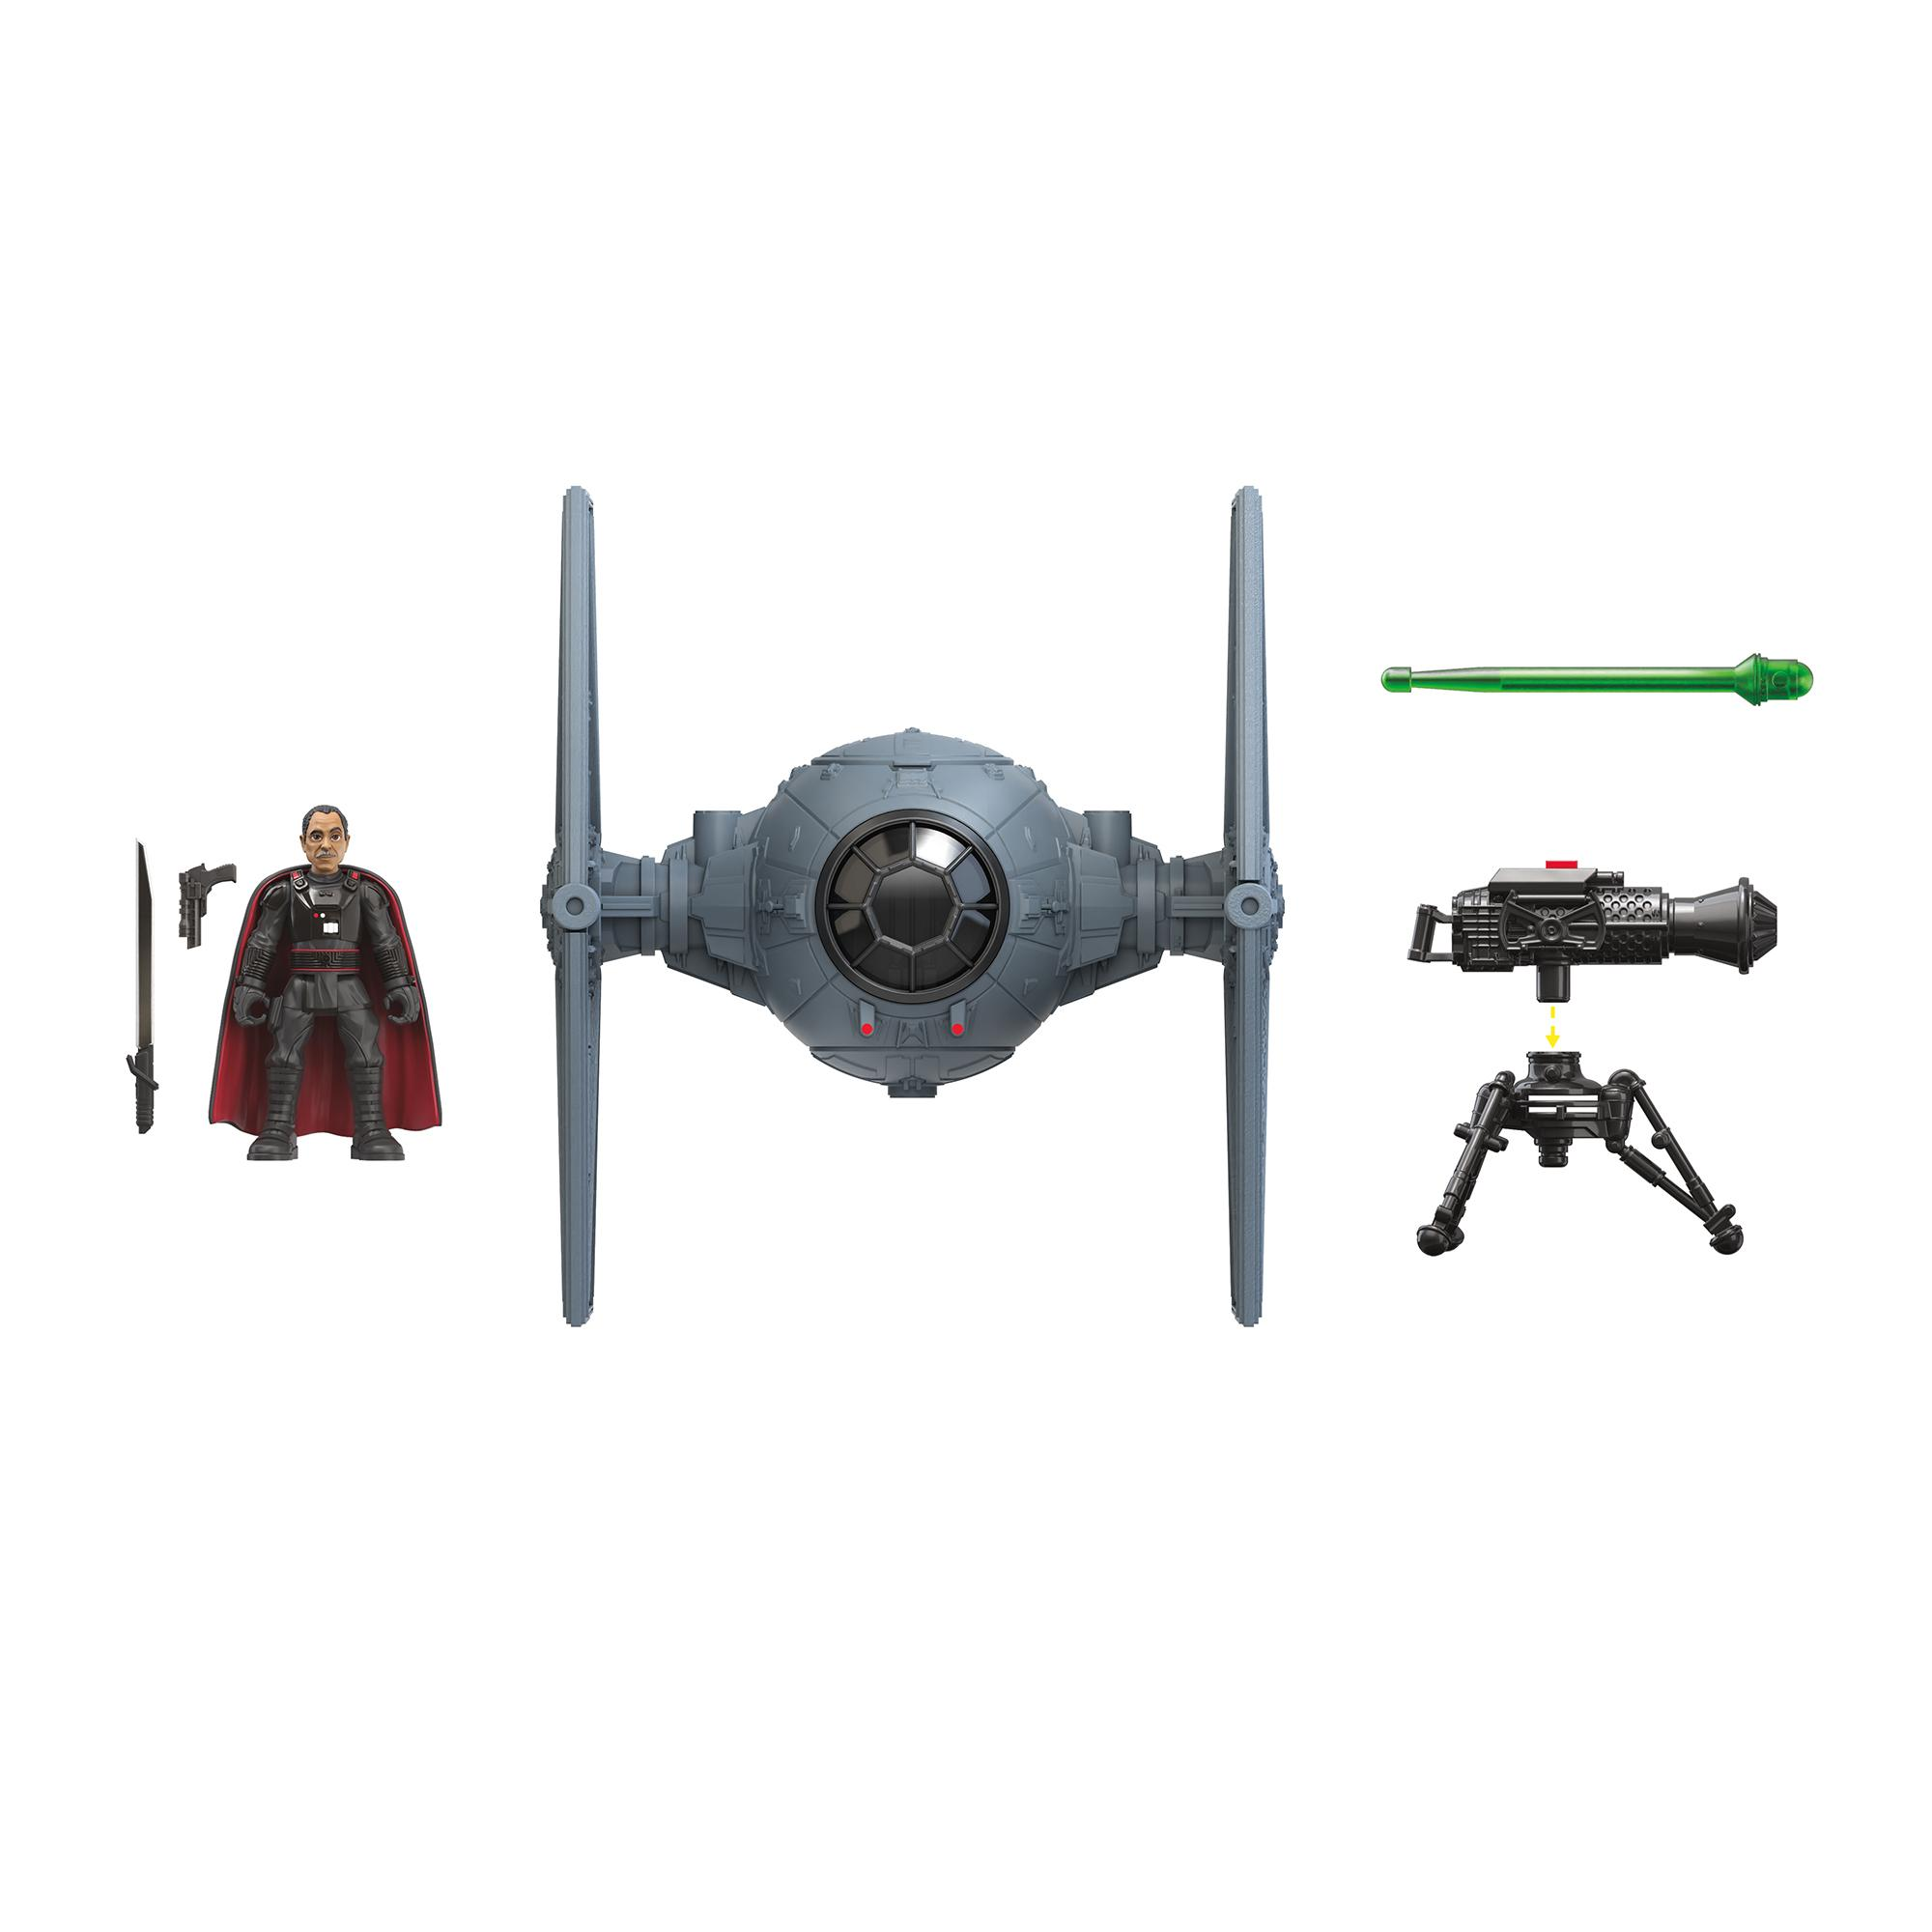 Star Wars Mission Fleet Stellar Class Moff Gideon Outland TIE Fighter Imperial Assault 2.5-Inch-Scale Figure and Vehicle